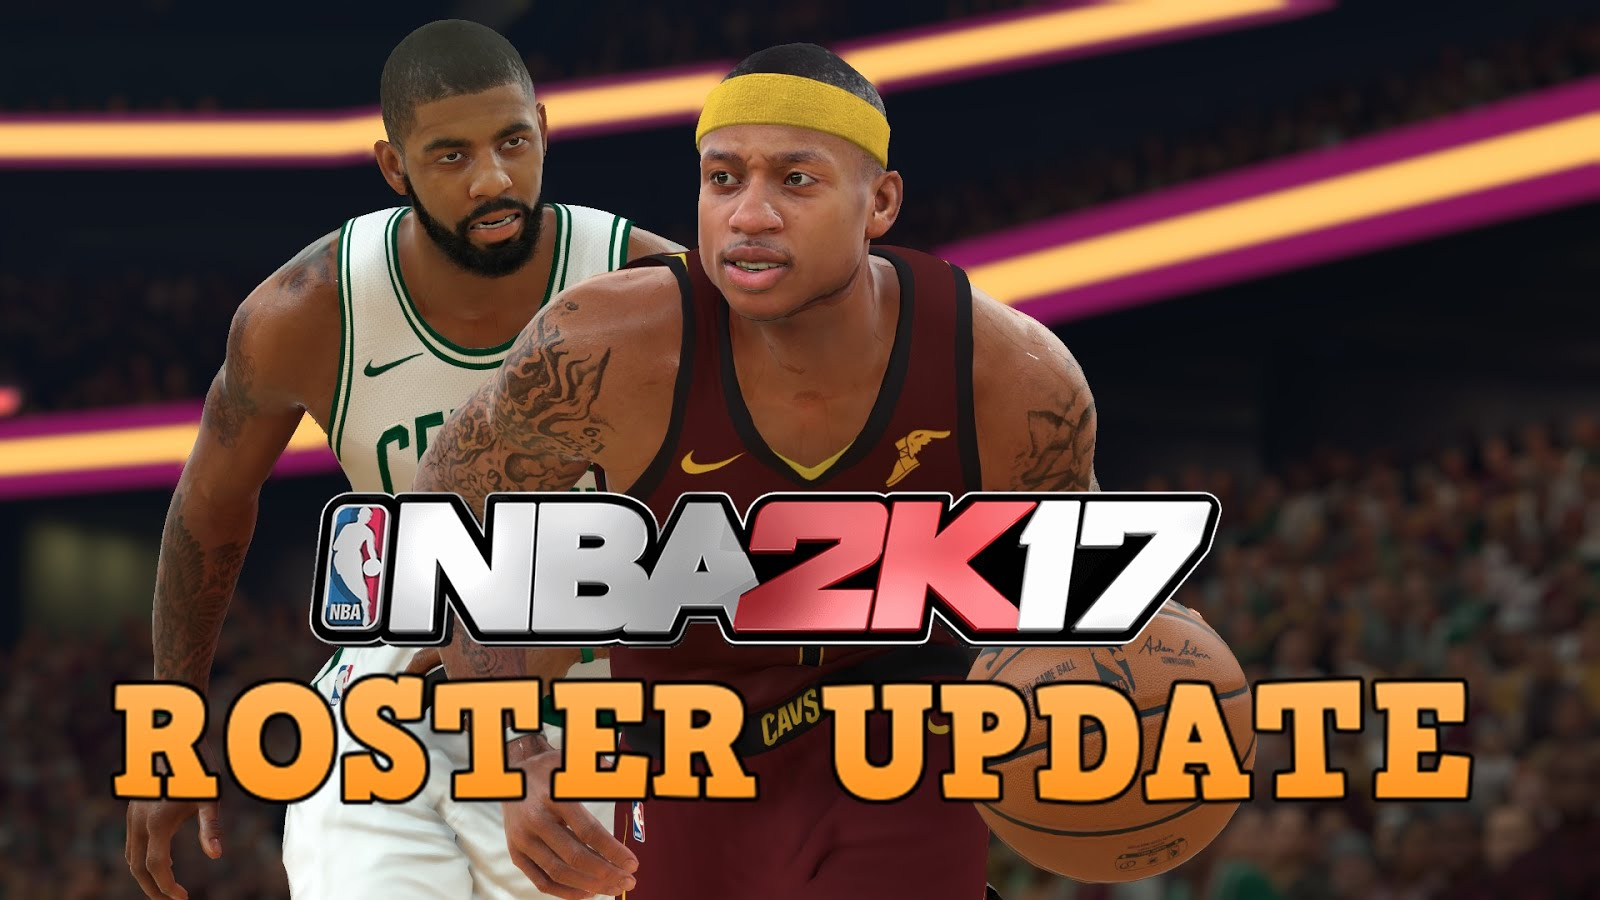 NBA 2K18 ROSTER UPDATE RELEASED │OMG ISAIAH THOMAS - KYRIE IRVING TRADE!